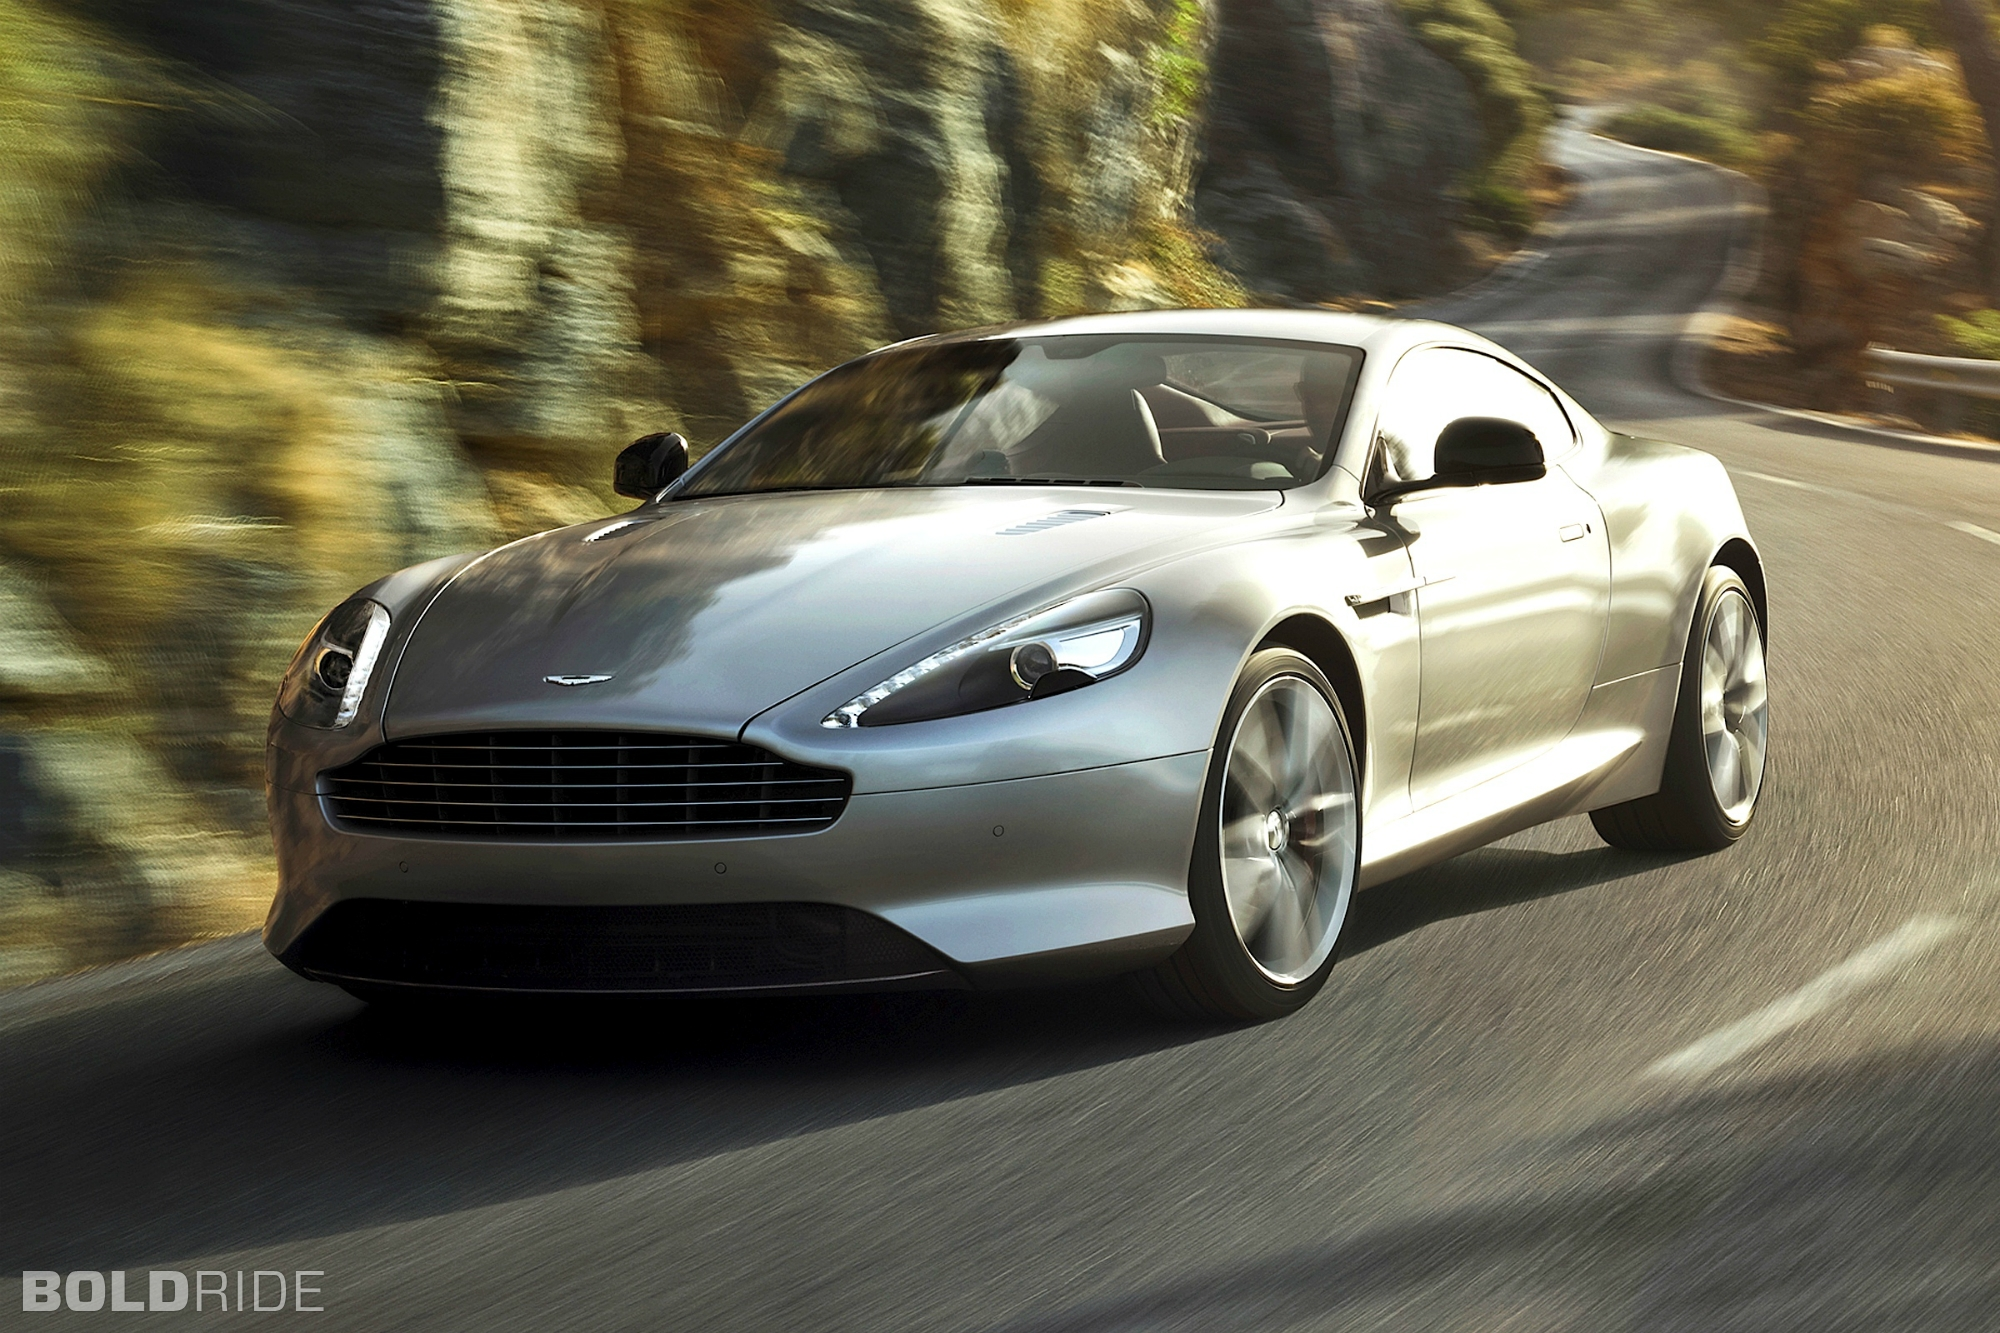 2013 aston martin db9 image 14. Cars Review. Best American Auto & Cars Review